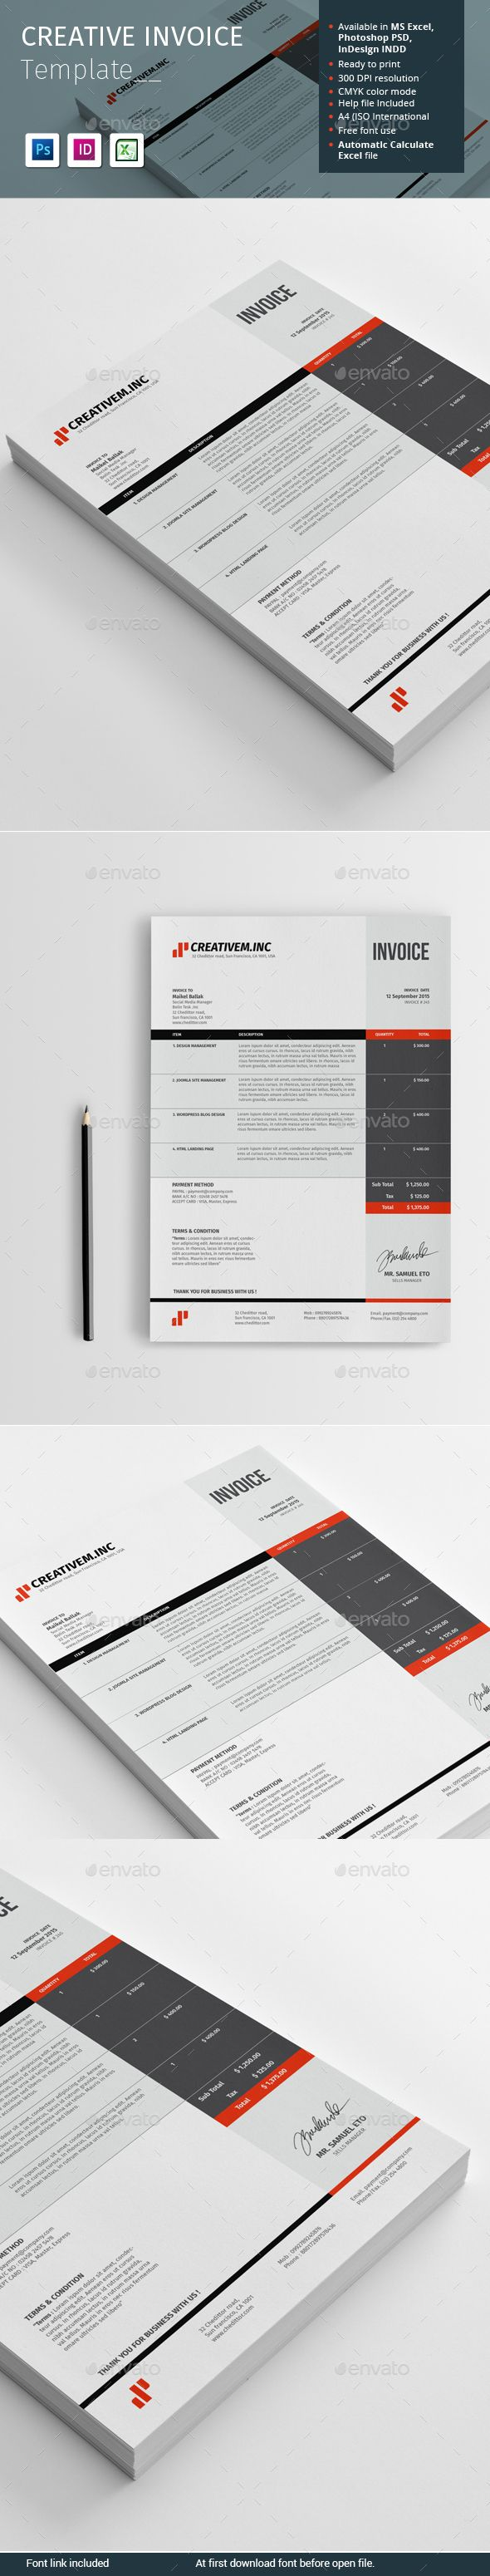 Creative Invoice Template Psd Indesign Indd Ms Excel  Financial